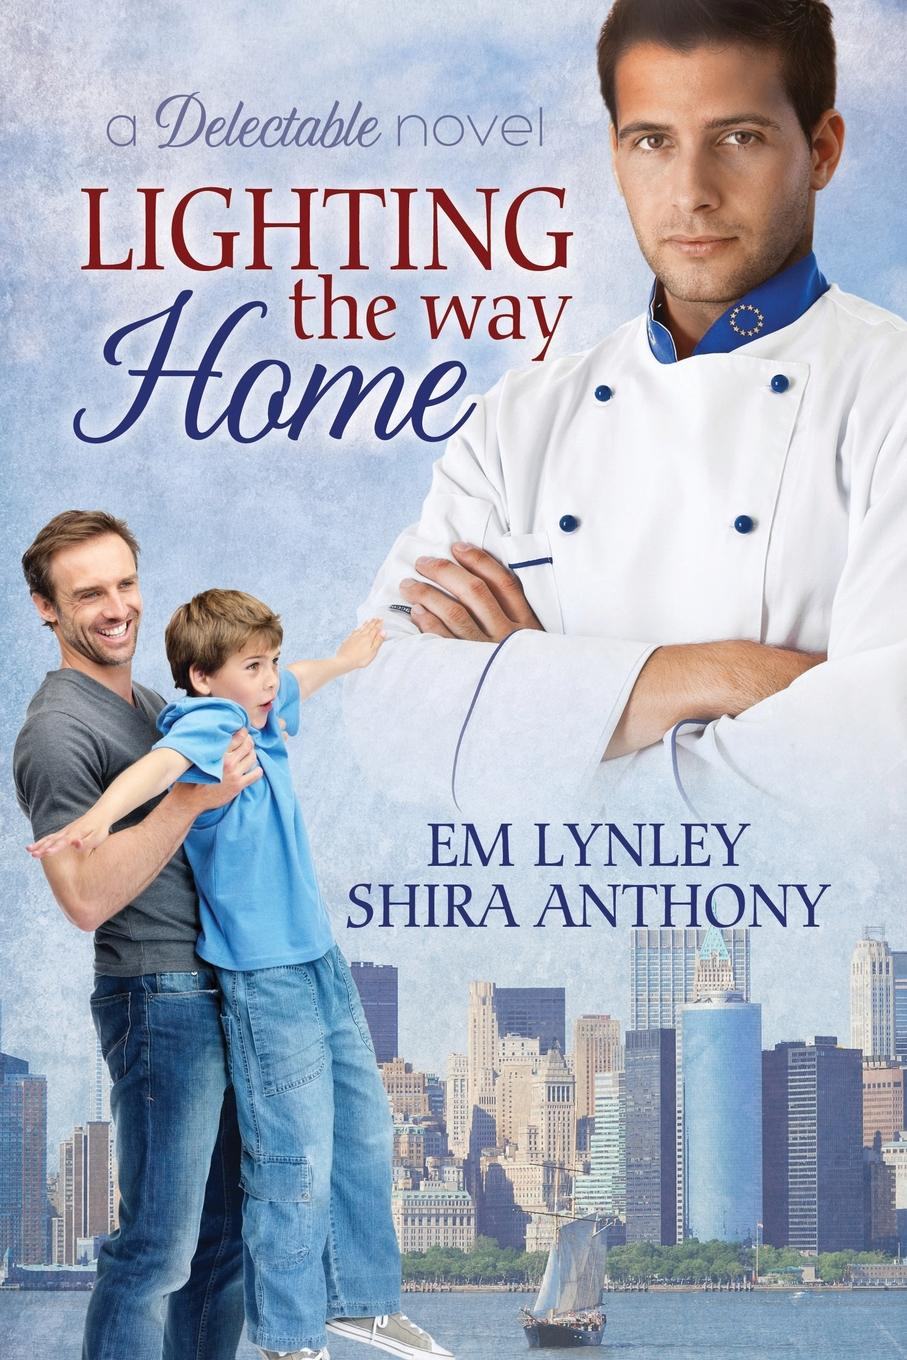 Em Lynley, Shira Anthony Lighting the Way Home billings josh the complete works of josh billings